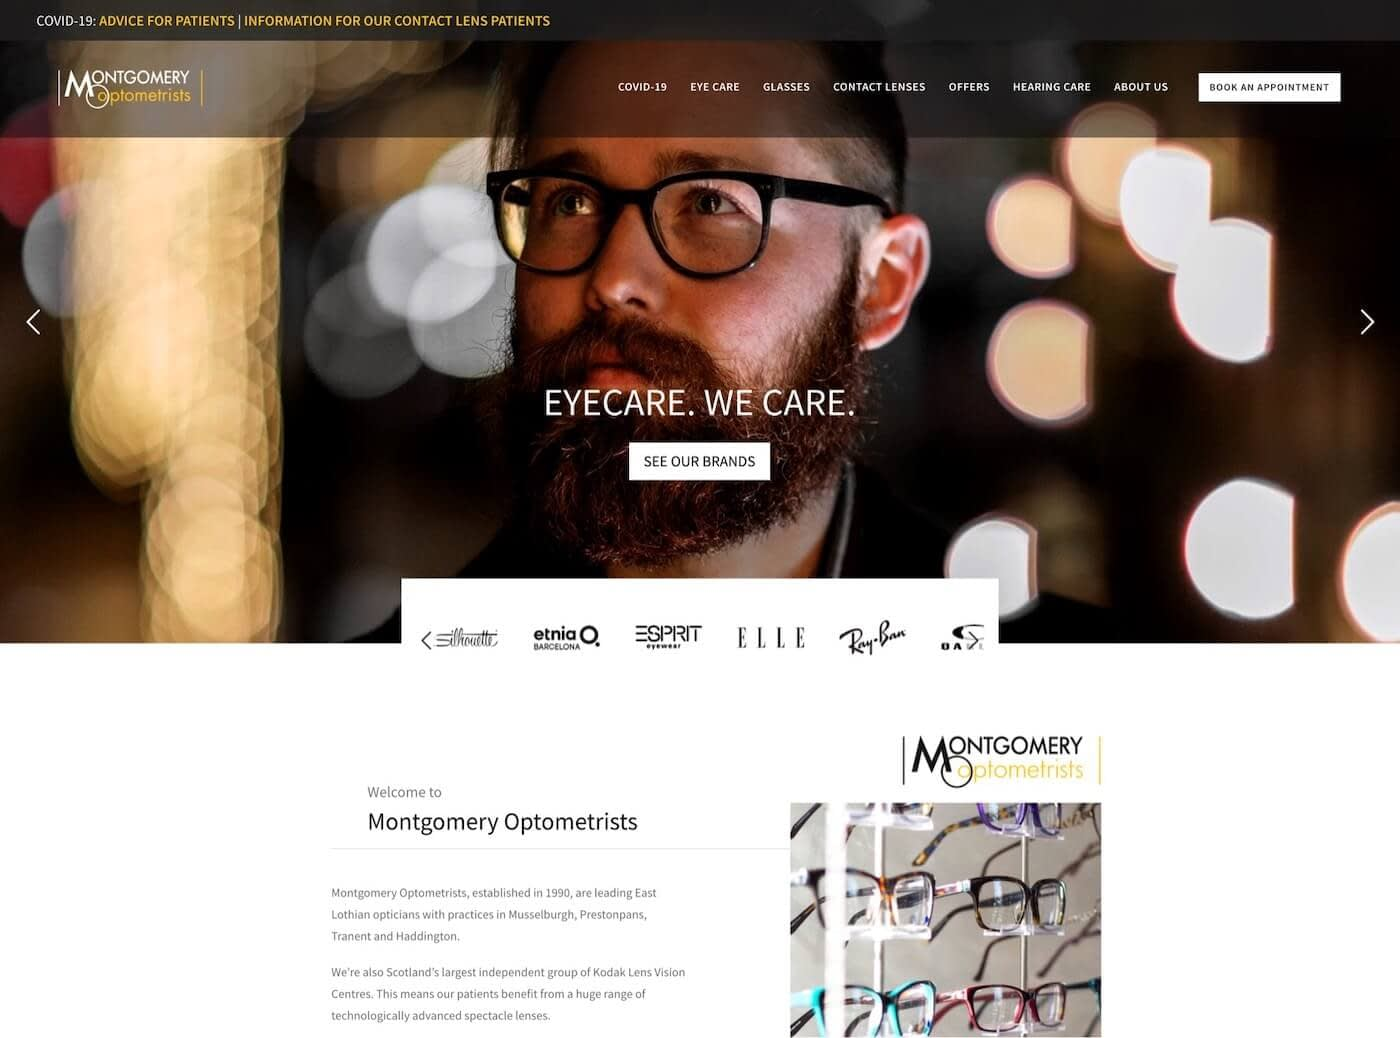 Web design for Montgomery Optometrists, Haddington, East Lothian